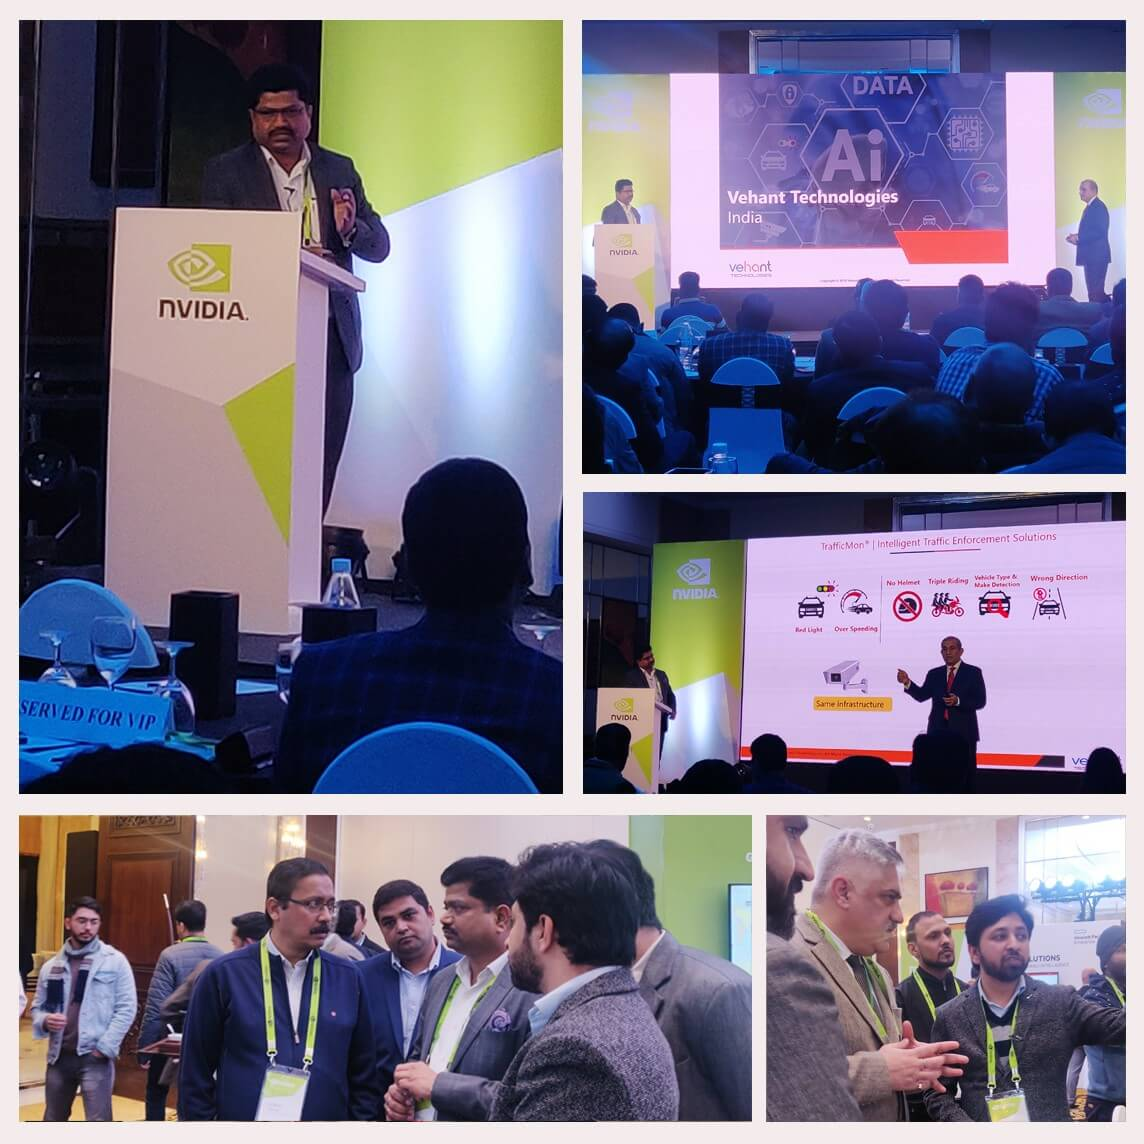 Vehant participated in AI and Intelligent Video Analytics Innovation Day organised by NVIDIA. Vehant demonstrated its range of AI based traffic enforcement and management solutions.